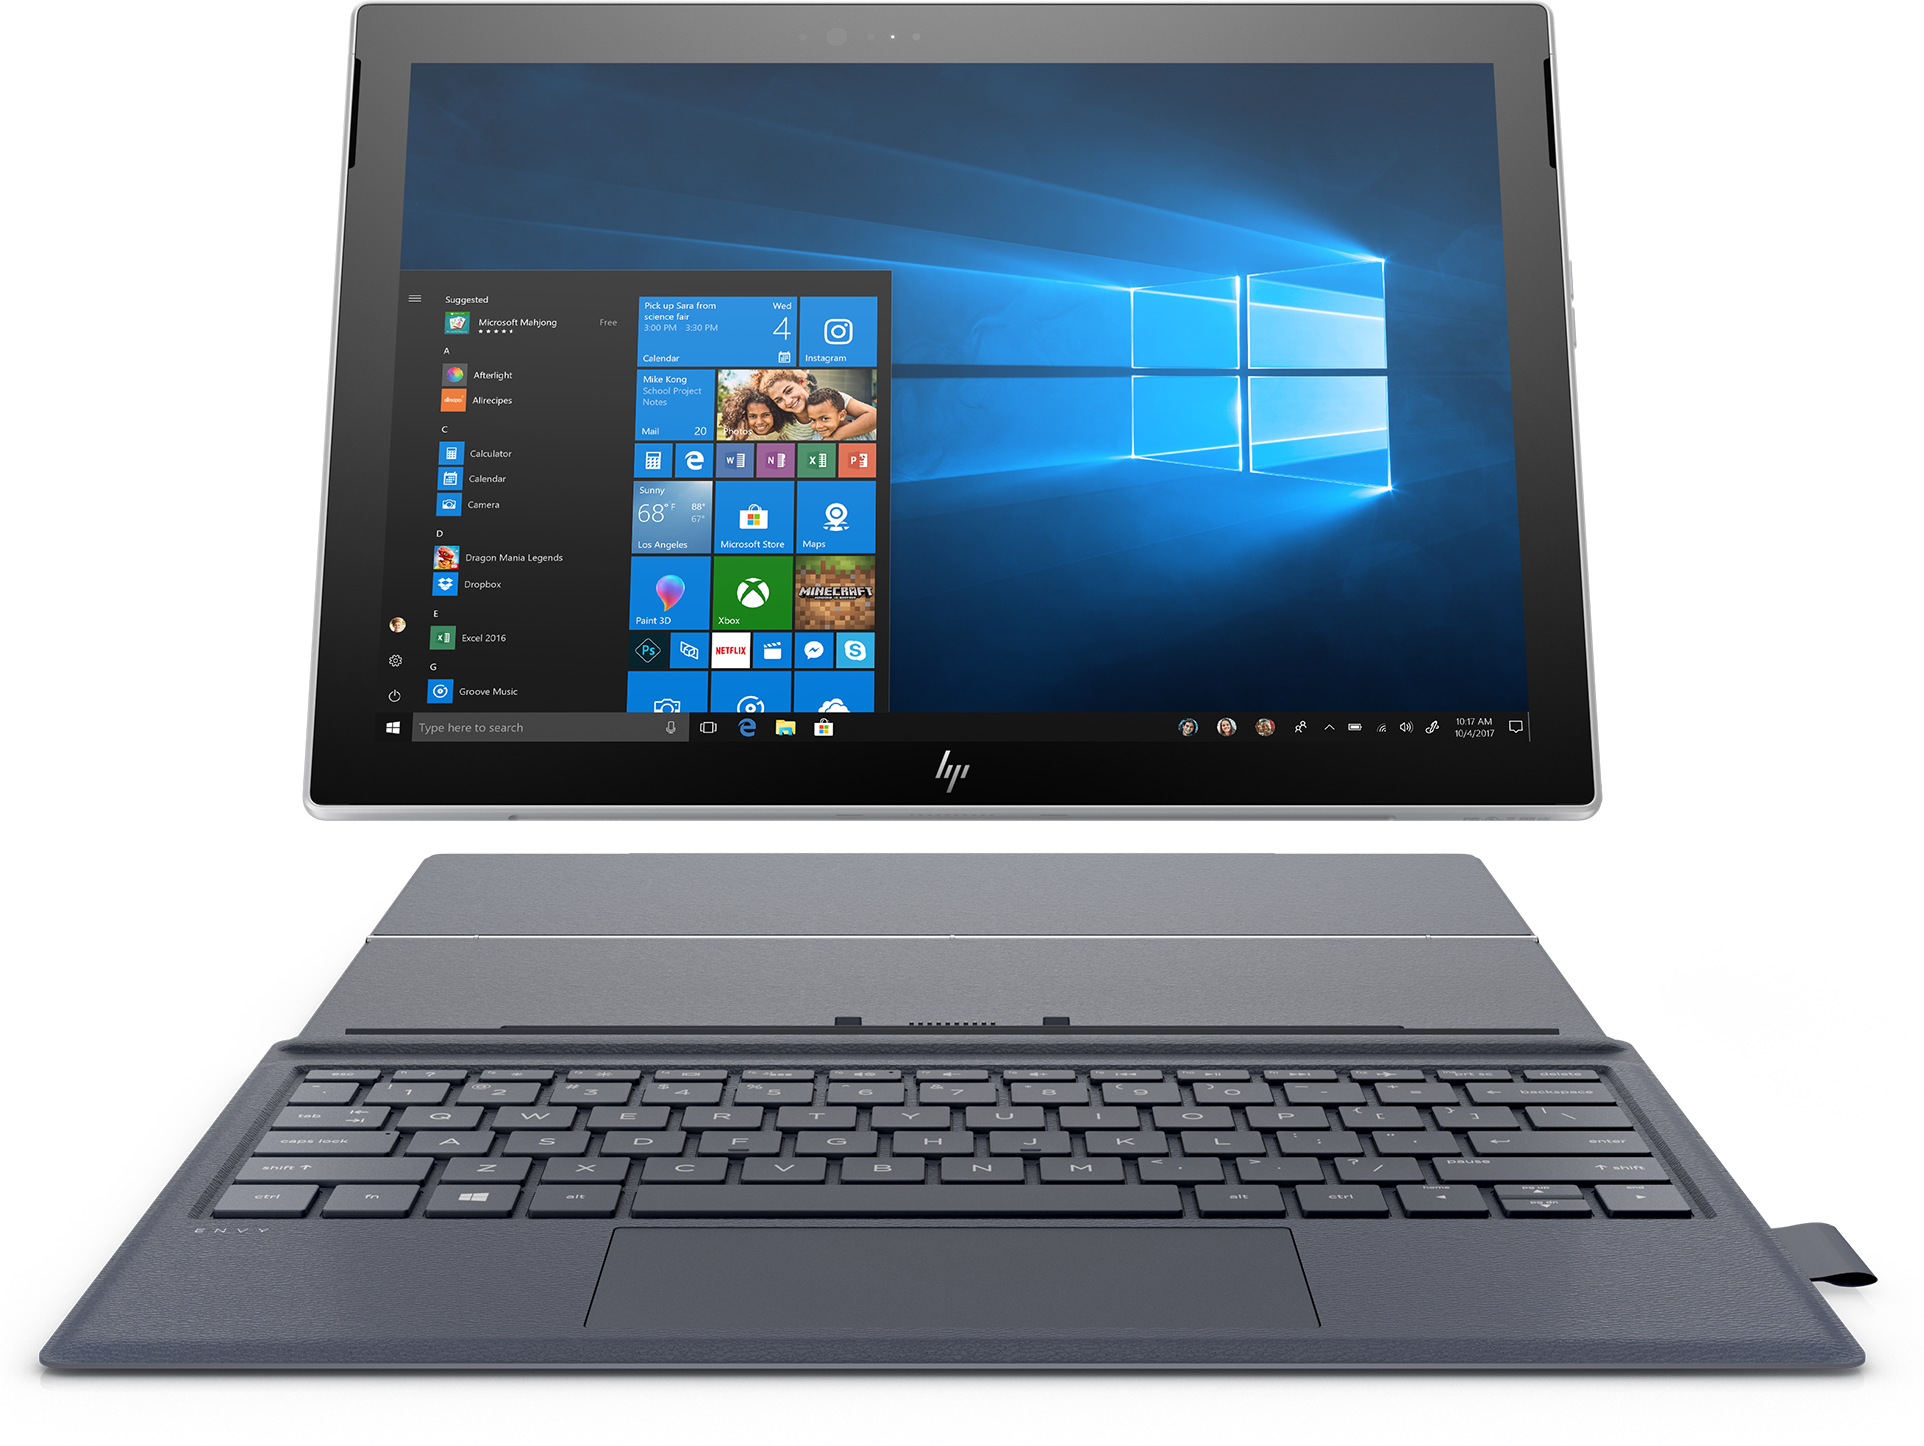 Buy Now: HP ENVY x2 Detachable 12-E068MS 2 in 1 PC [RJOVenturesInc.com]